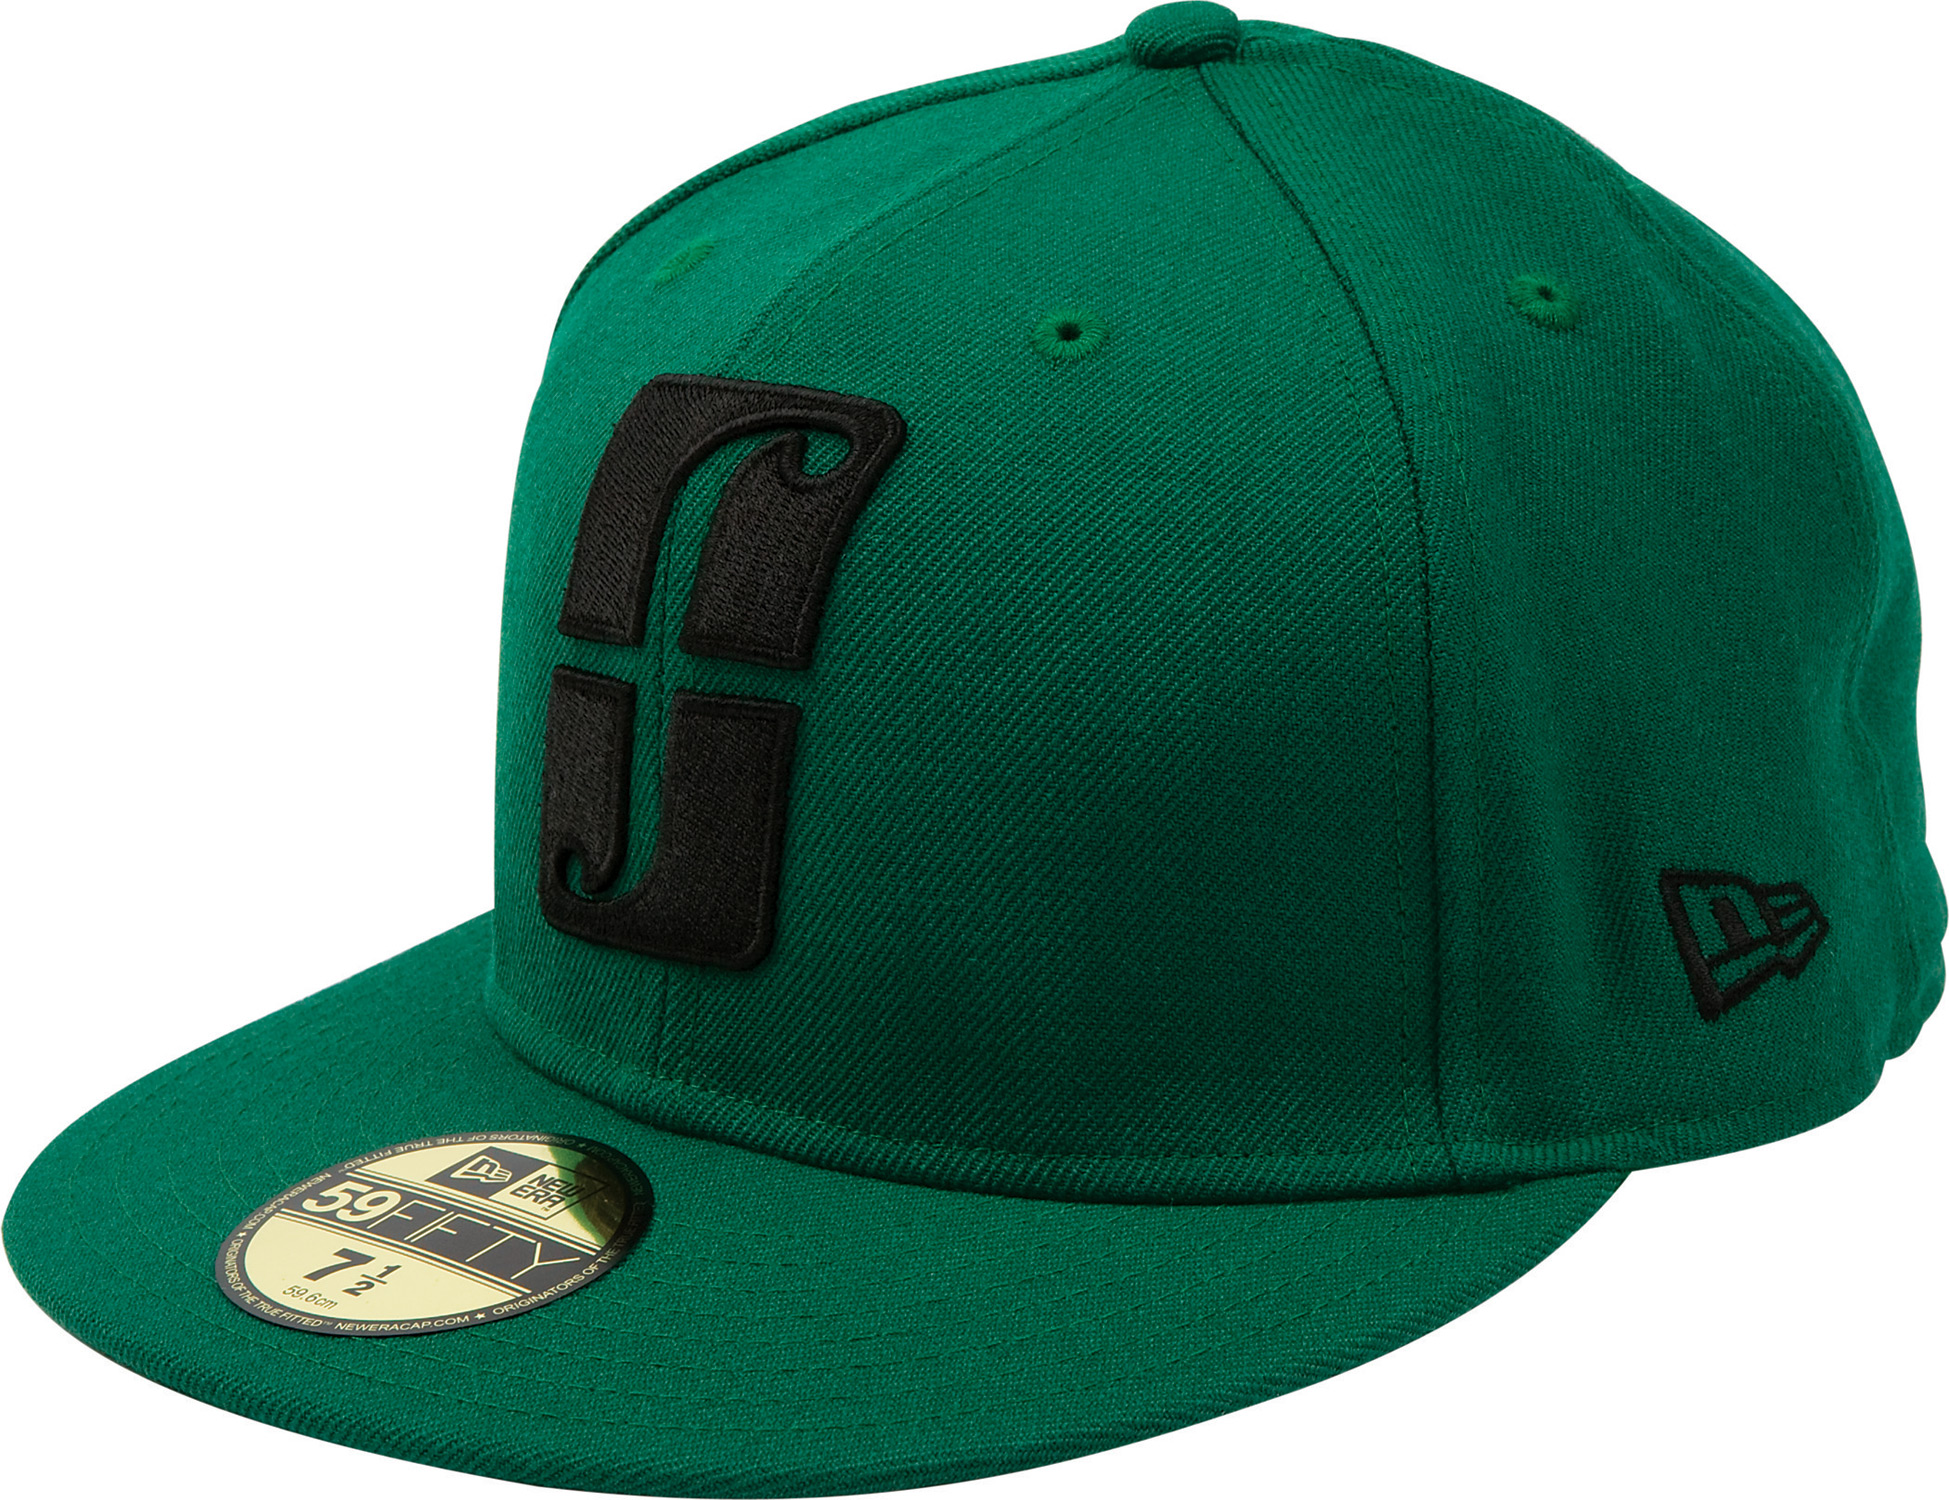 Forum Fm Icon New Era Kelly Green Cap - $10.76